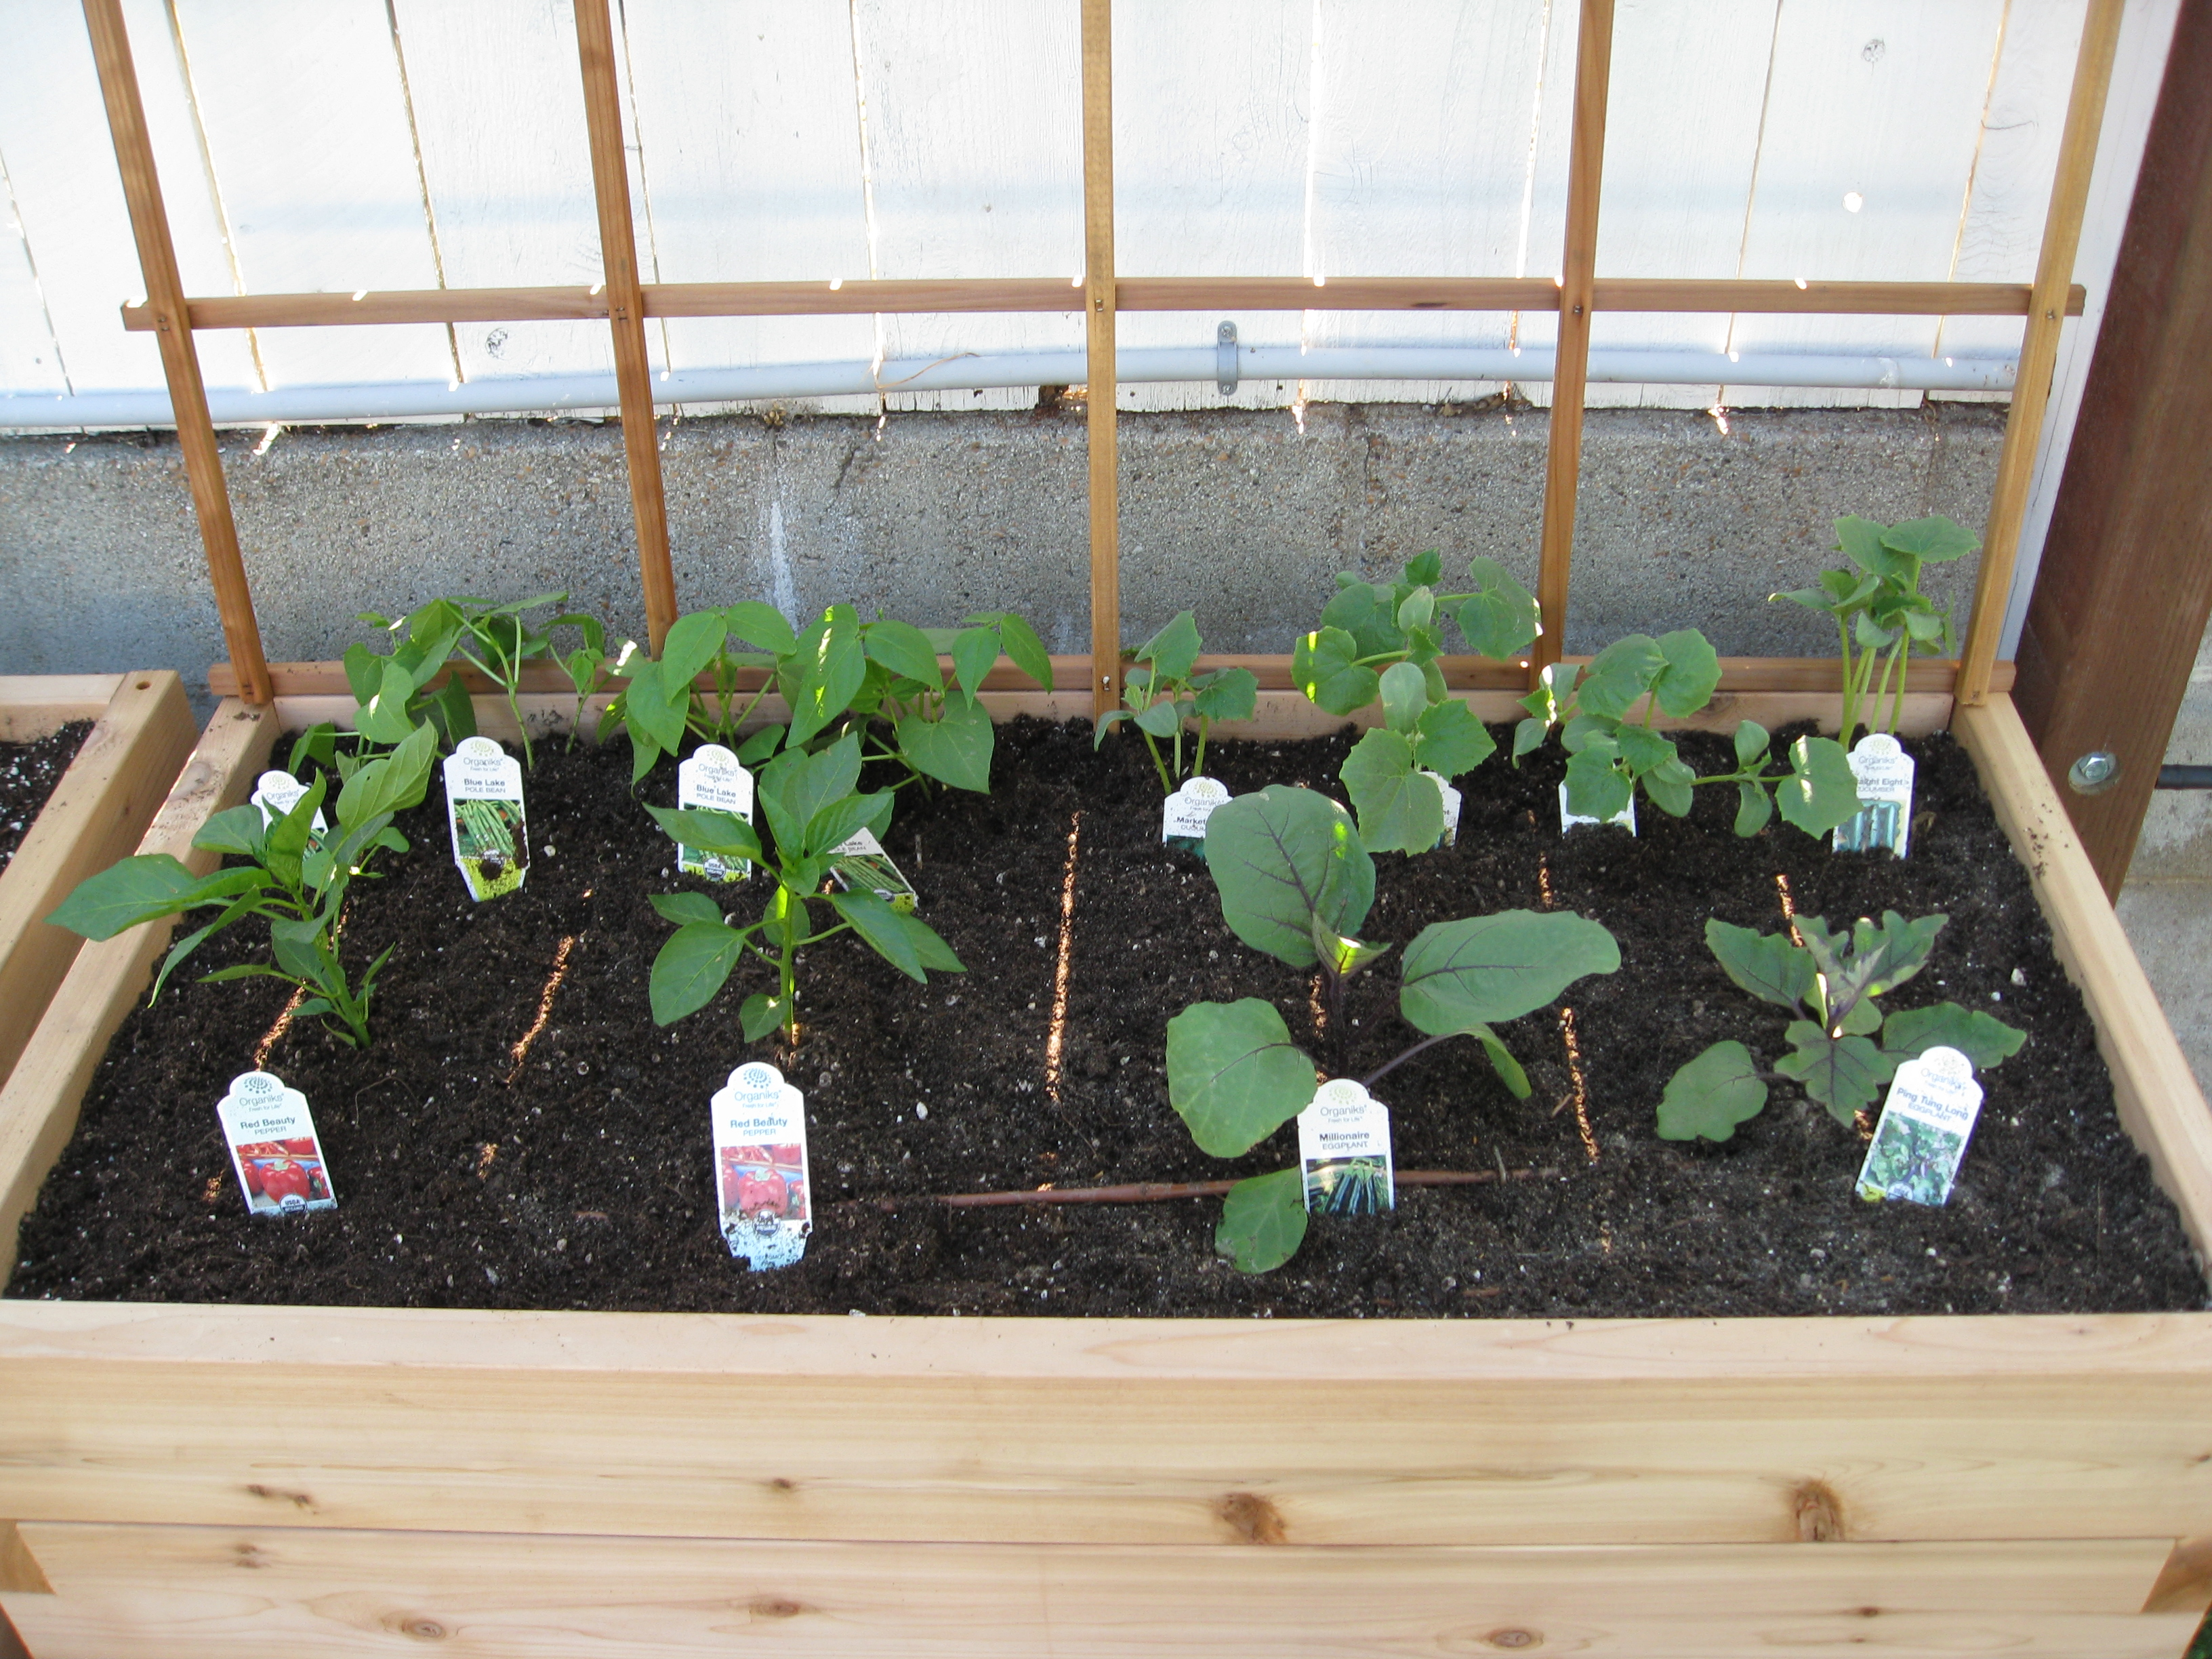 Peppers, cucumbers, pole beans and eggplants fill the last bed.